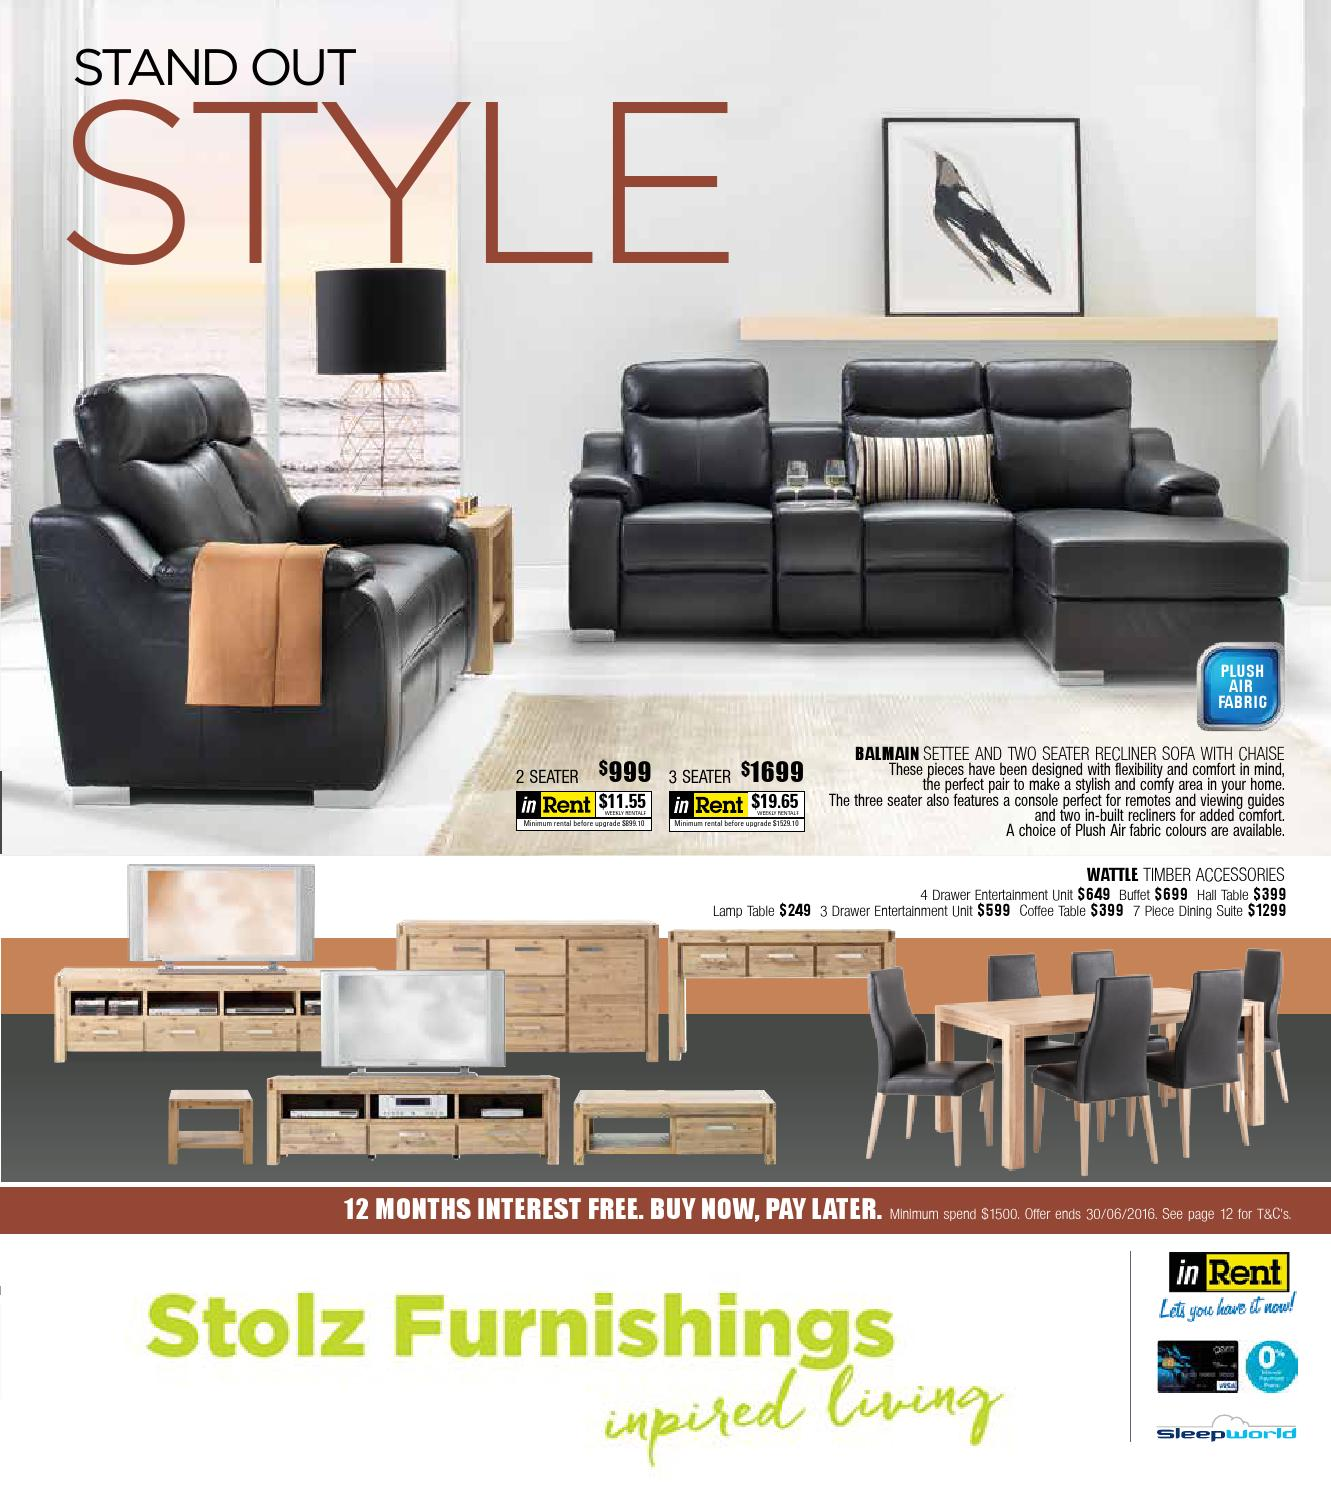 Sofa buy now pay later best furniture inspiration images for Best buy now pay later